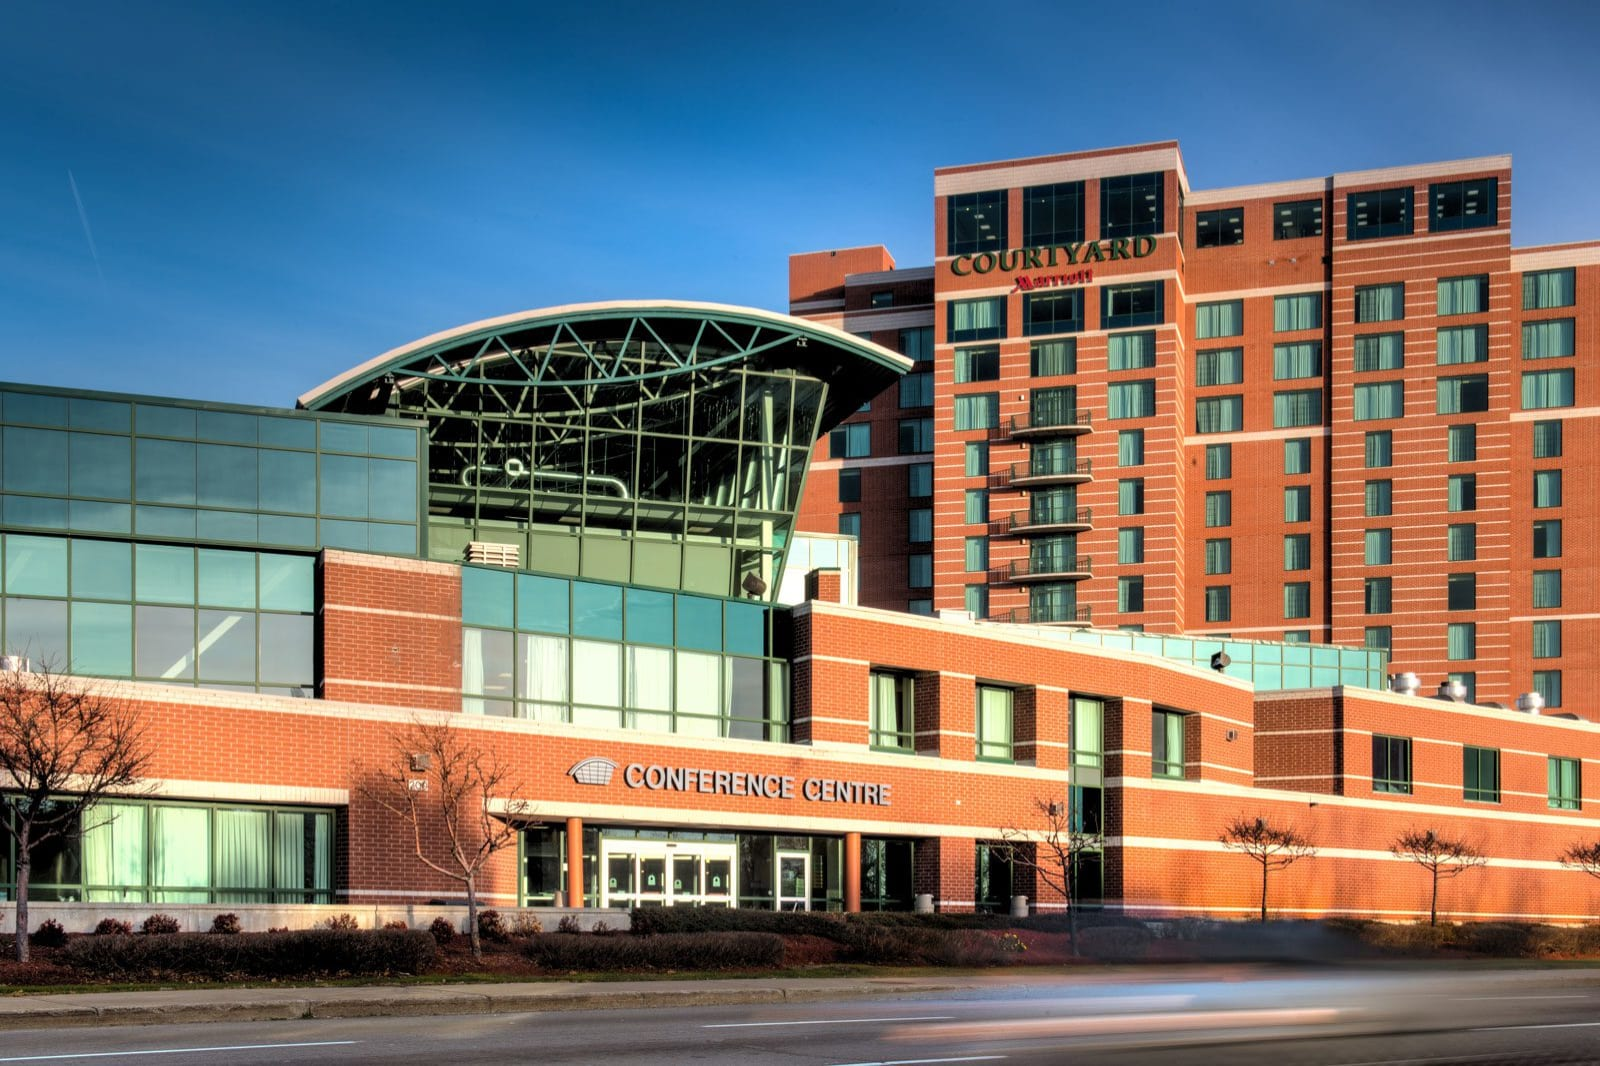 004-Ottawa-Conference-and-Event-Centre-and-Hotels-Exterior1-1600x1068-w1600.jpg